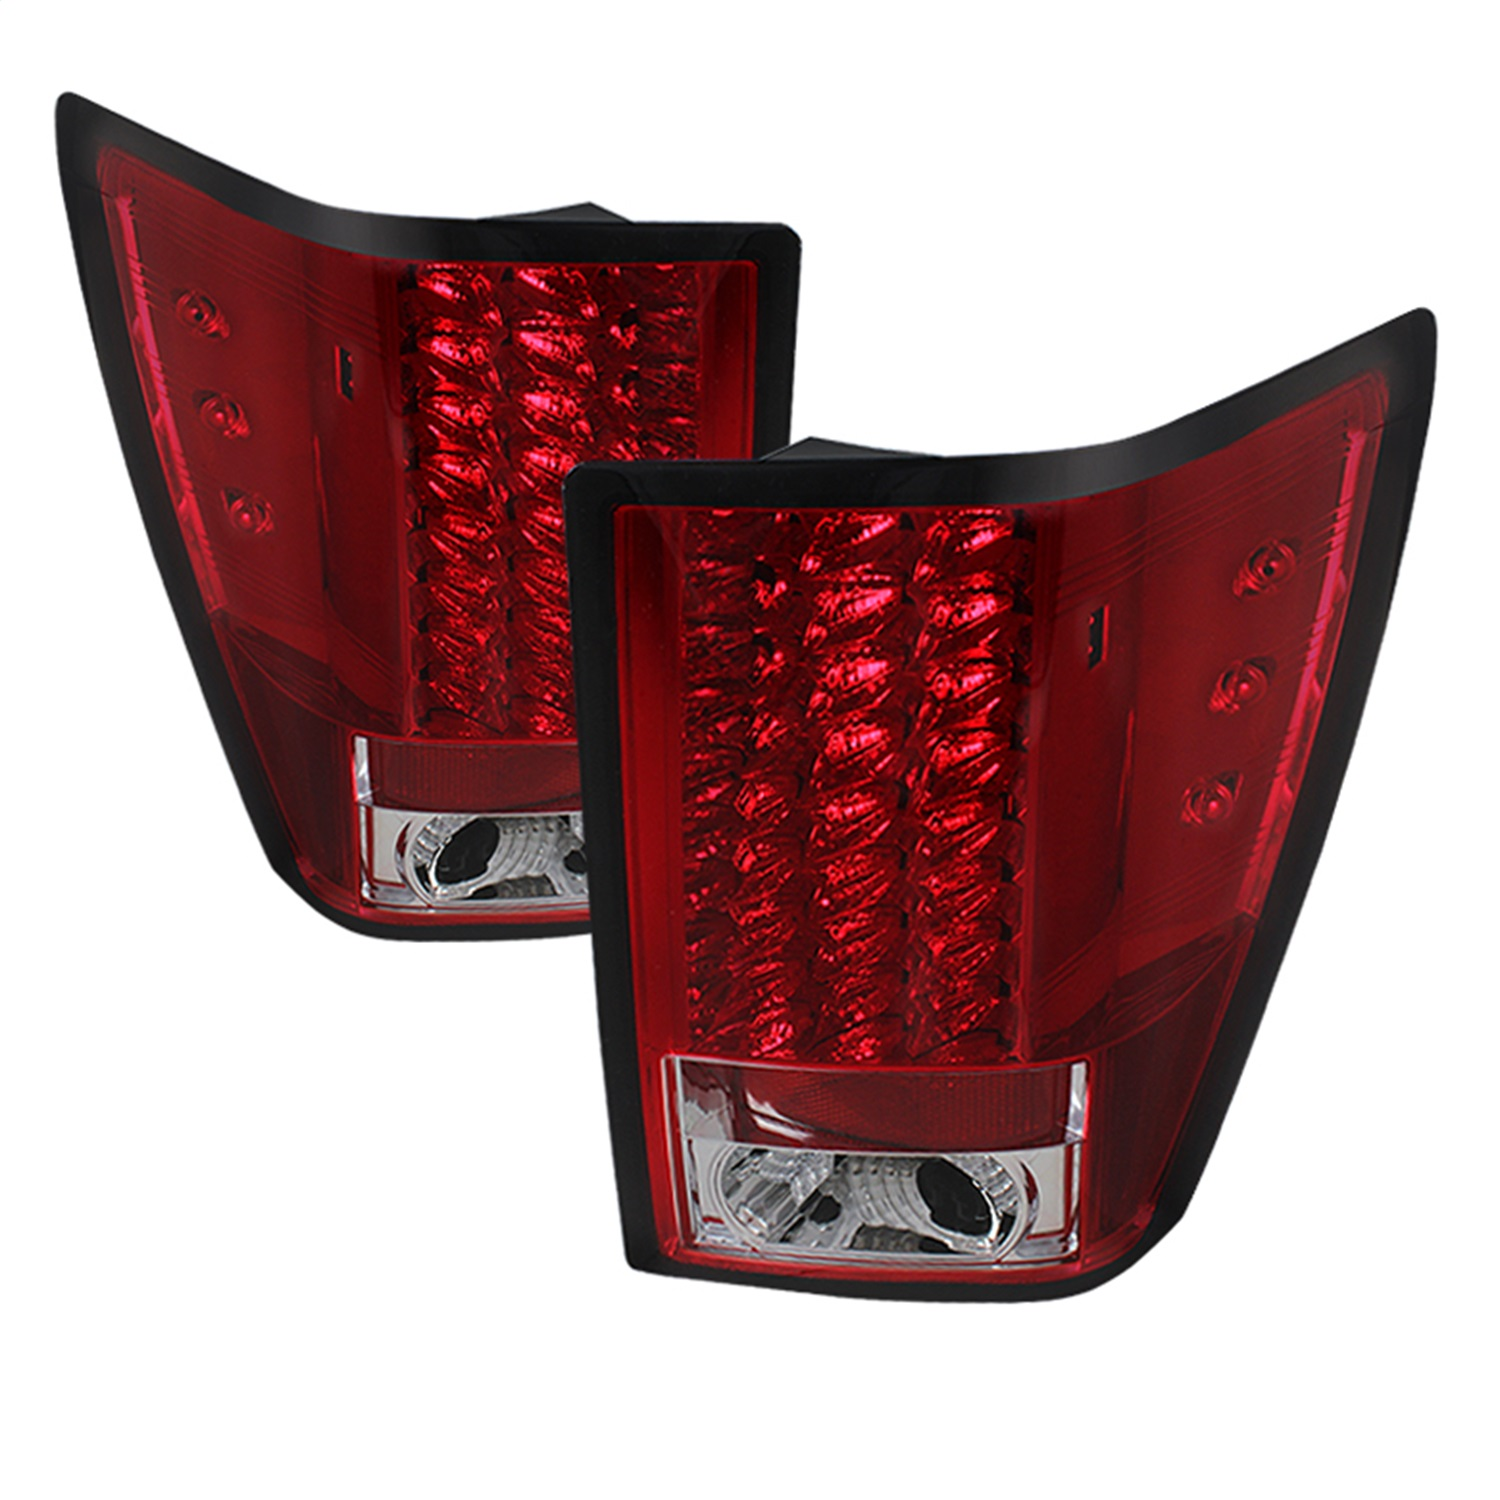 Spyder Auto 5070203 LED Tail Lights Fits 07-10 Grand Cherokee